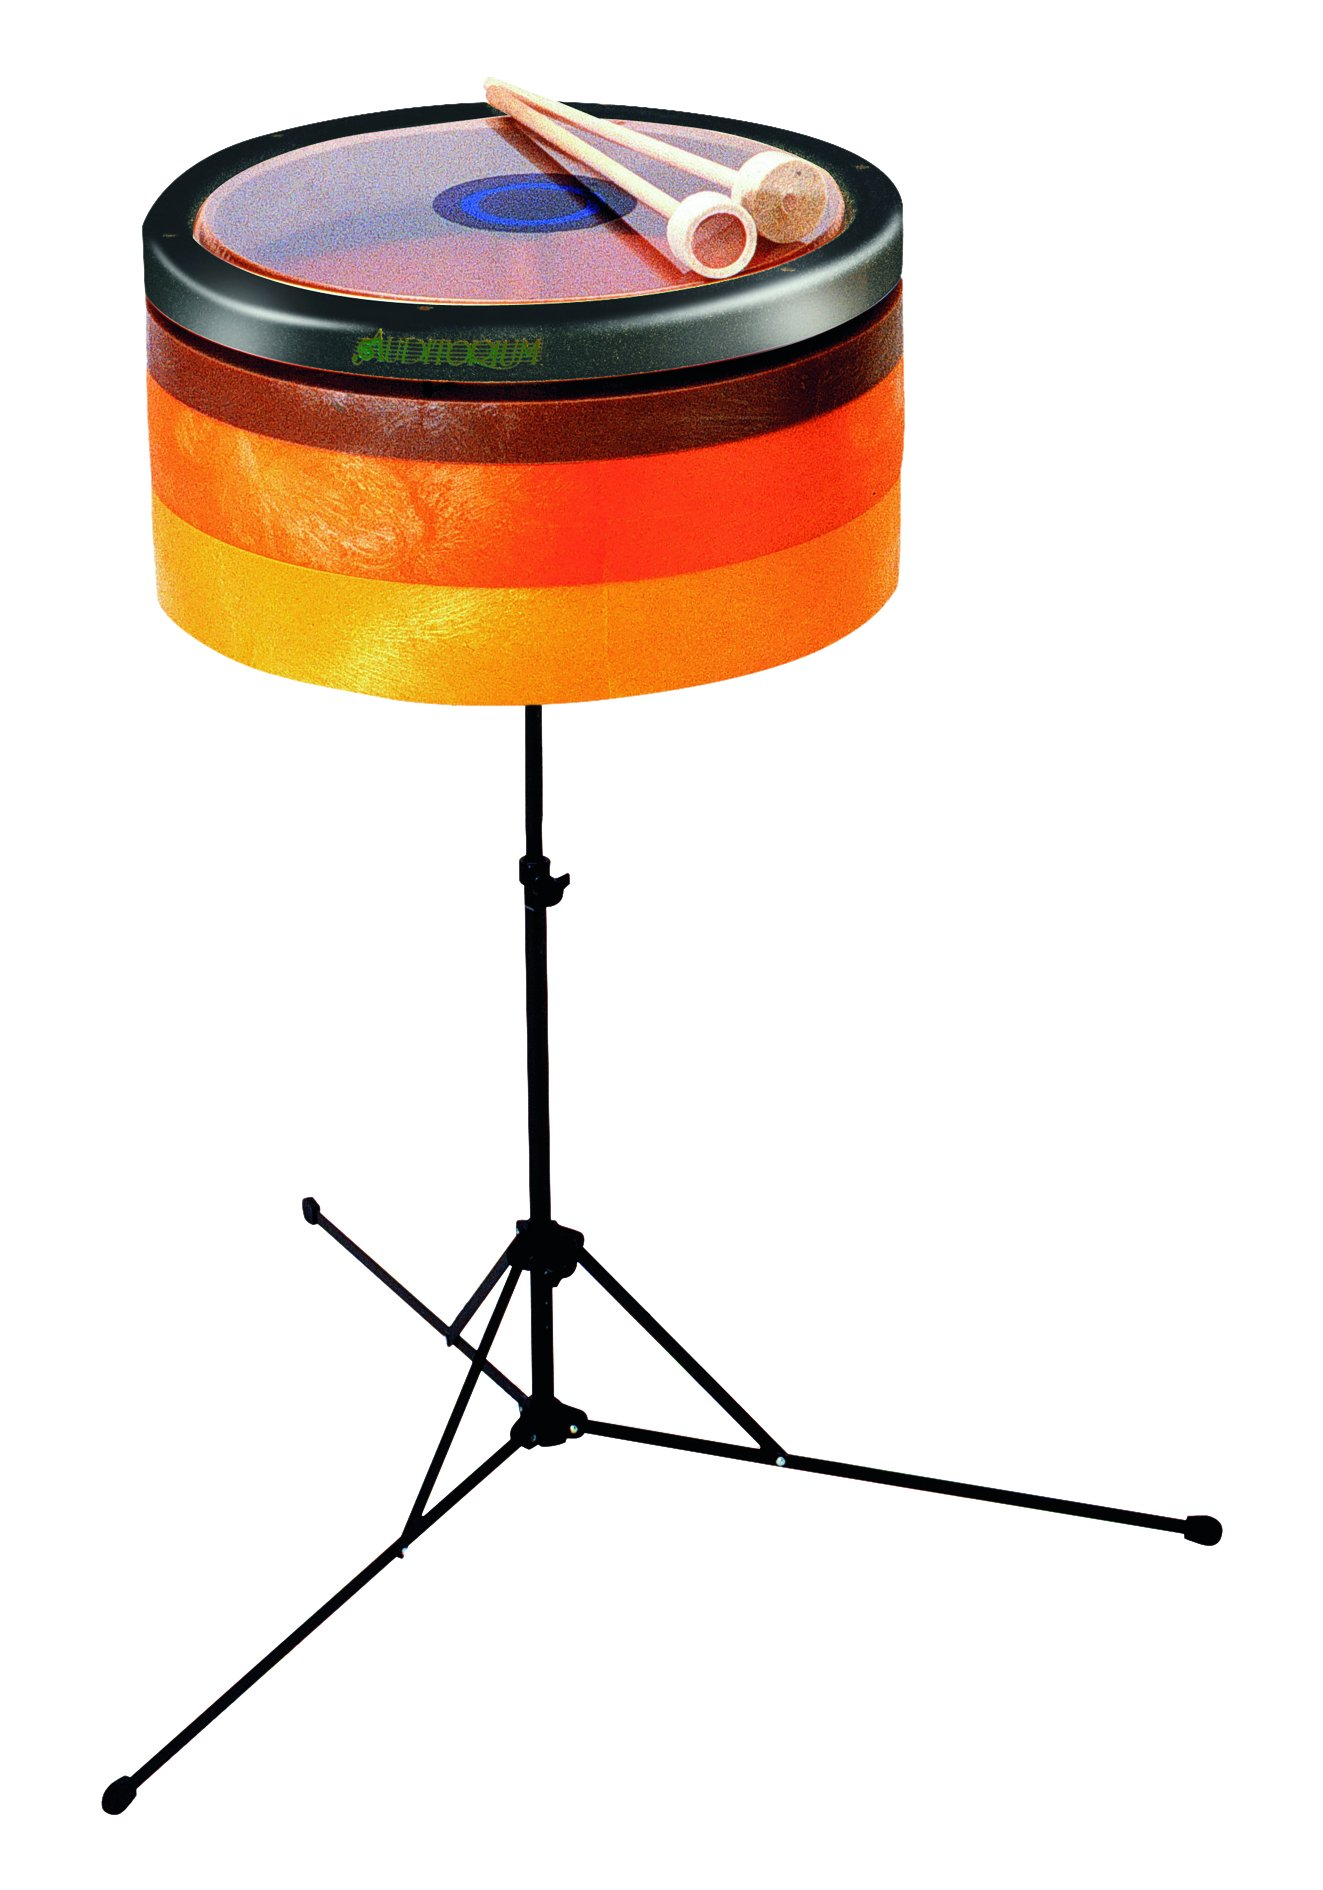 Gitre 771/30 30 cm Plastic Shell Timpani with Tunable Plastic Head by Gitre